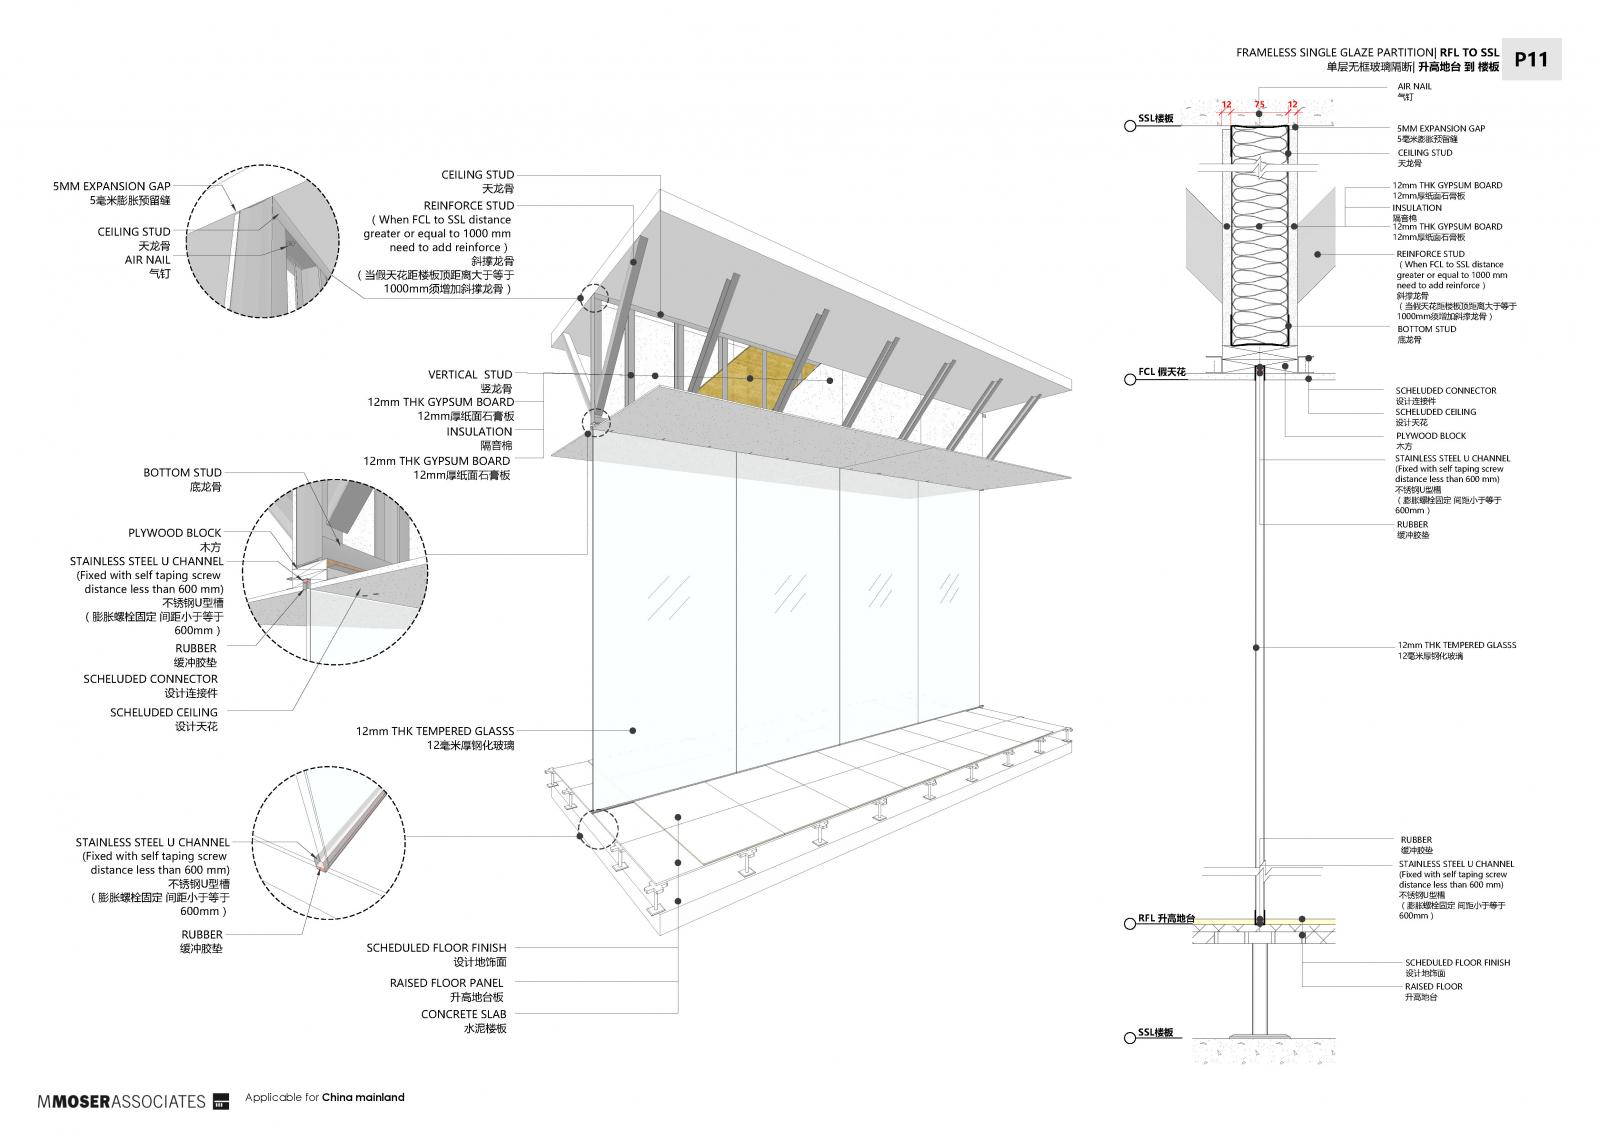 LayOut enables construction detailing to be templated for all projects in a region